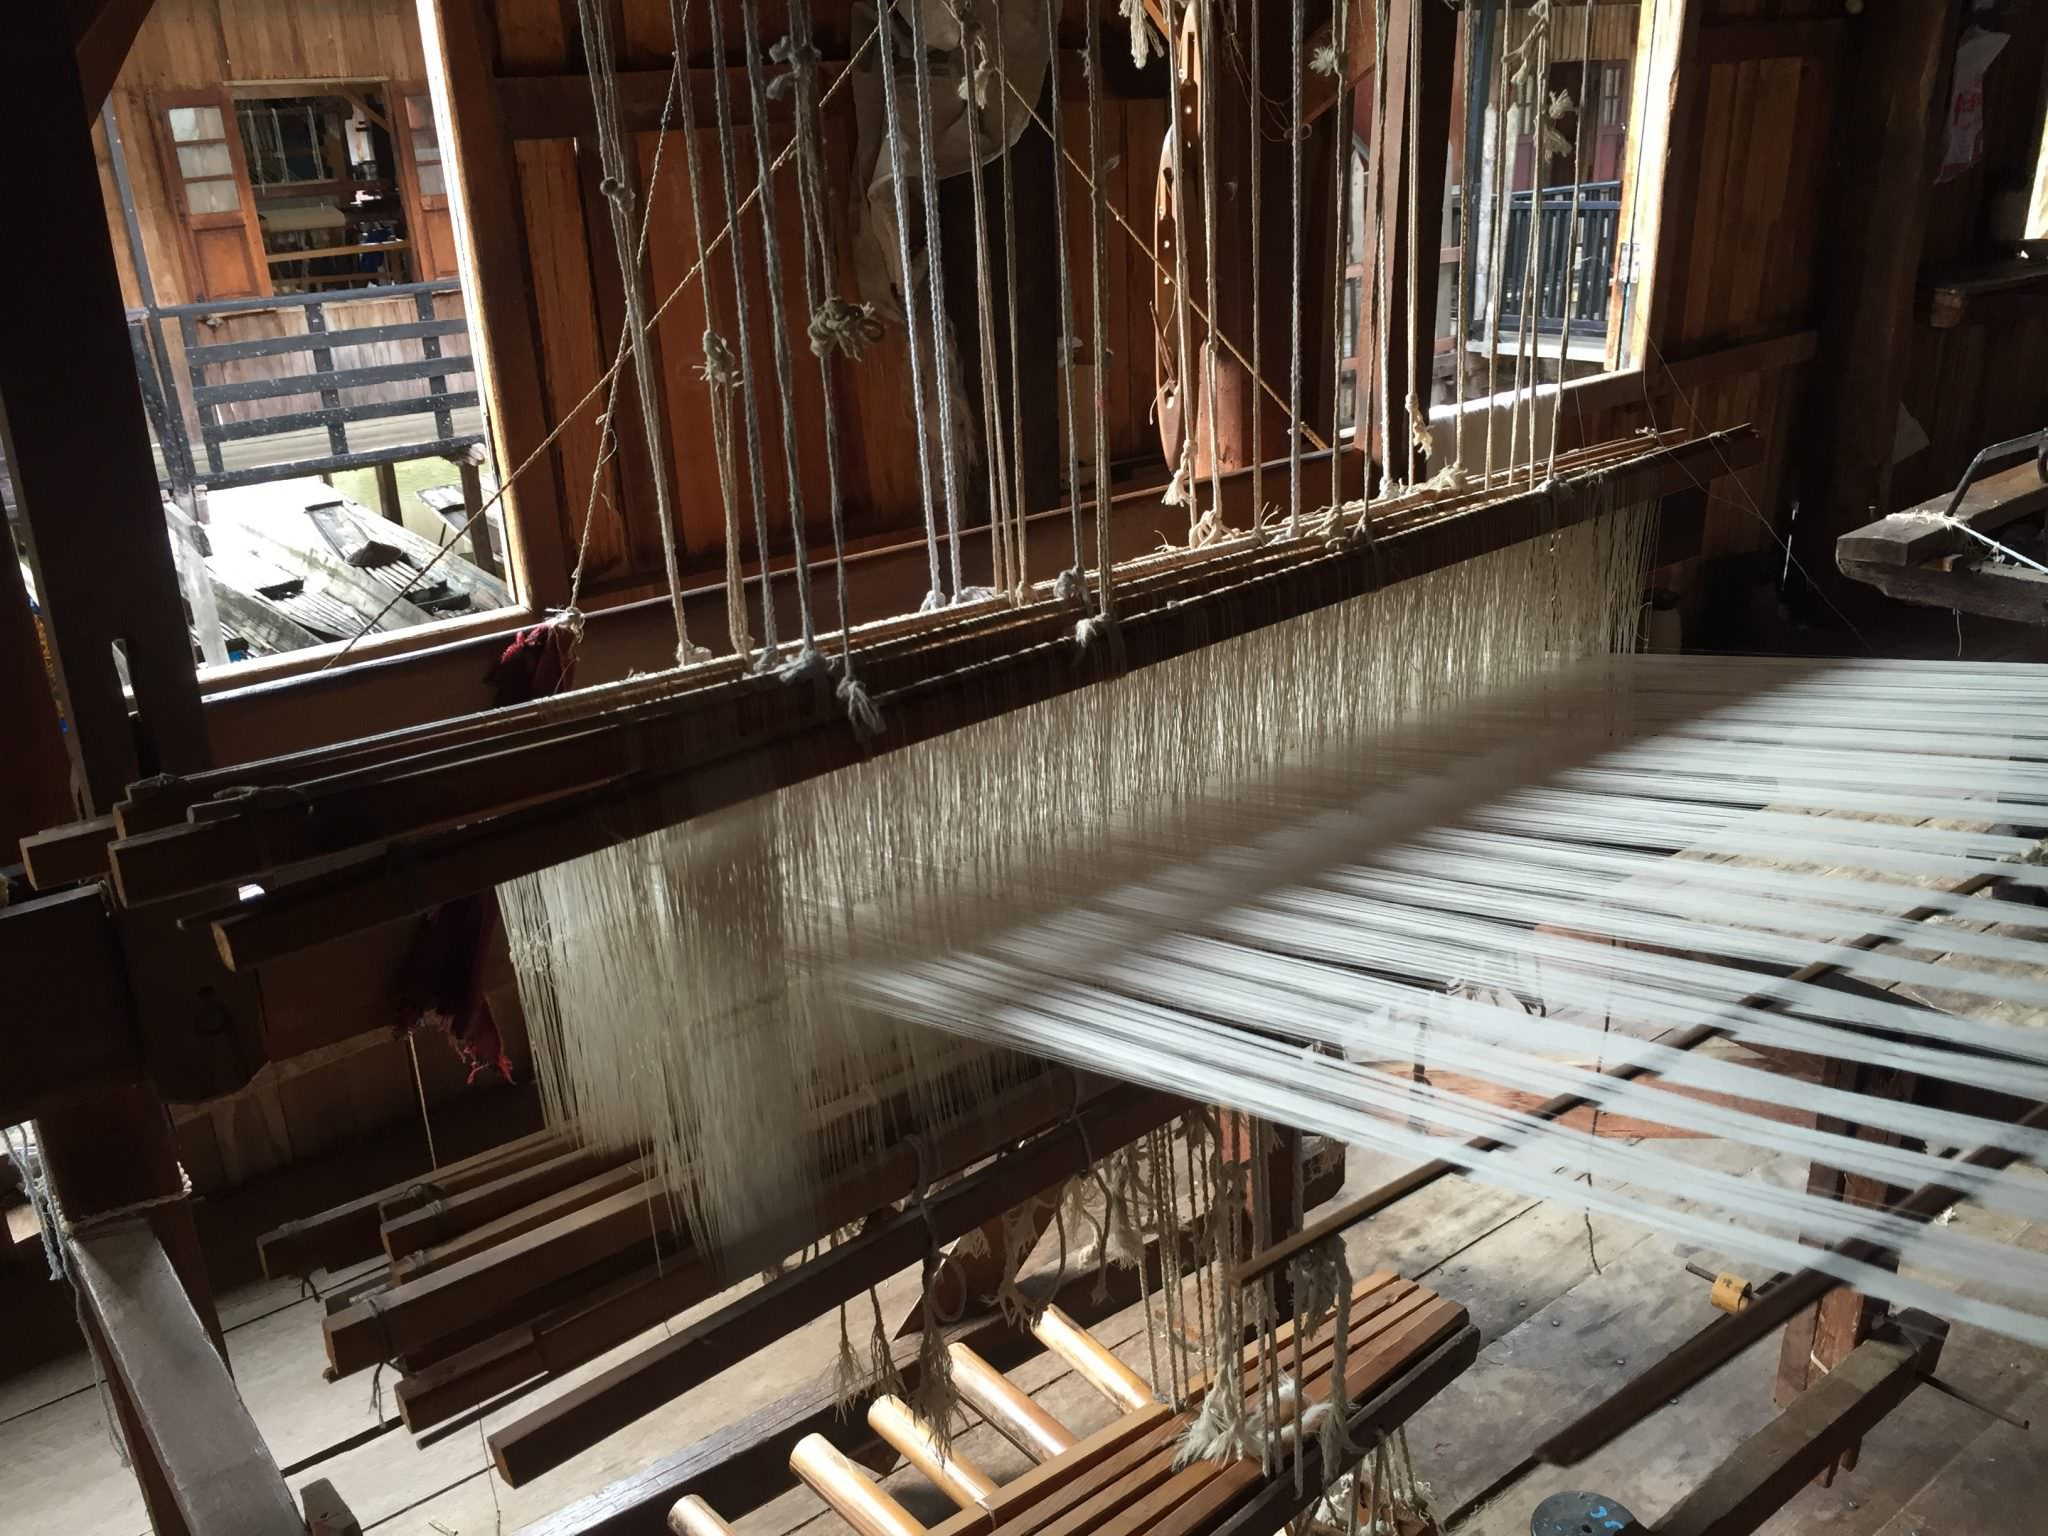 The clacking noise of manual, wooden looms was rhythmic and hypnotic. © 2015 Gail Jessen